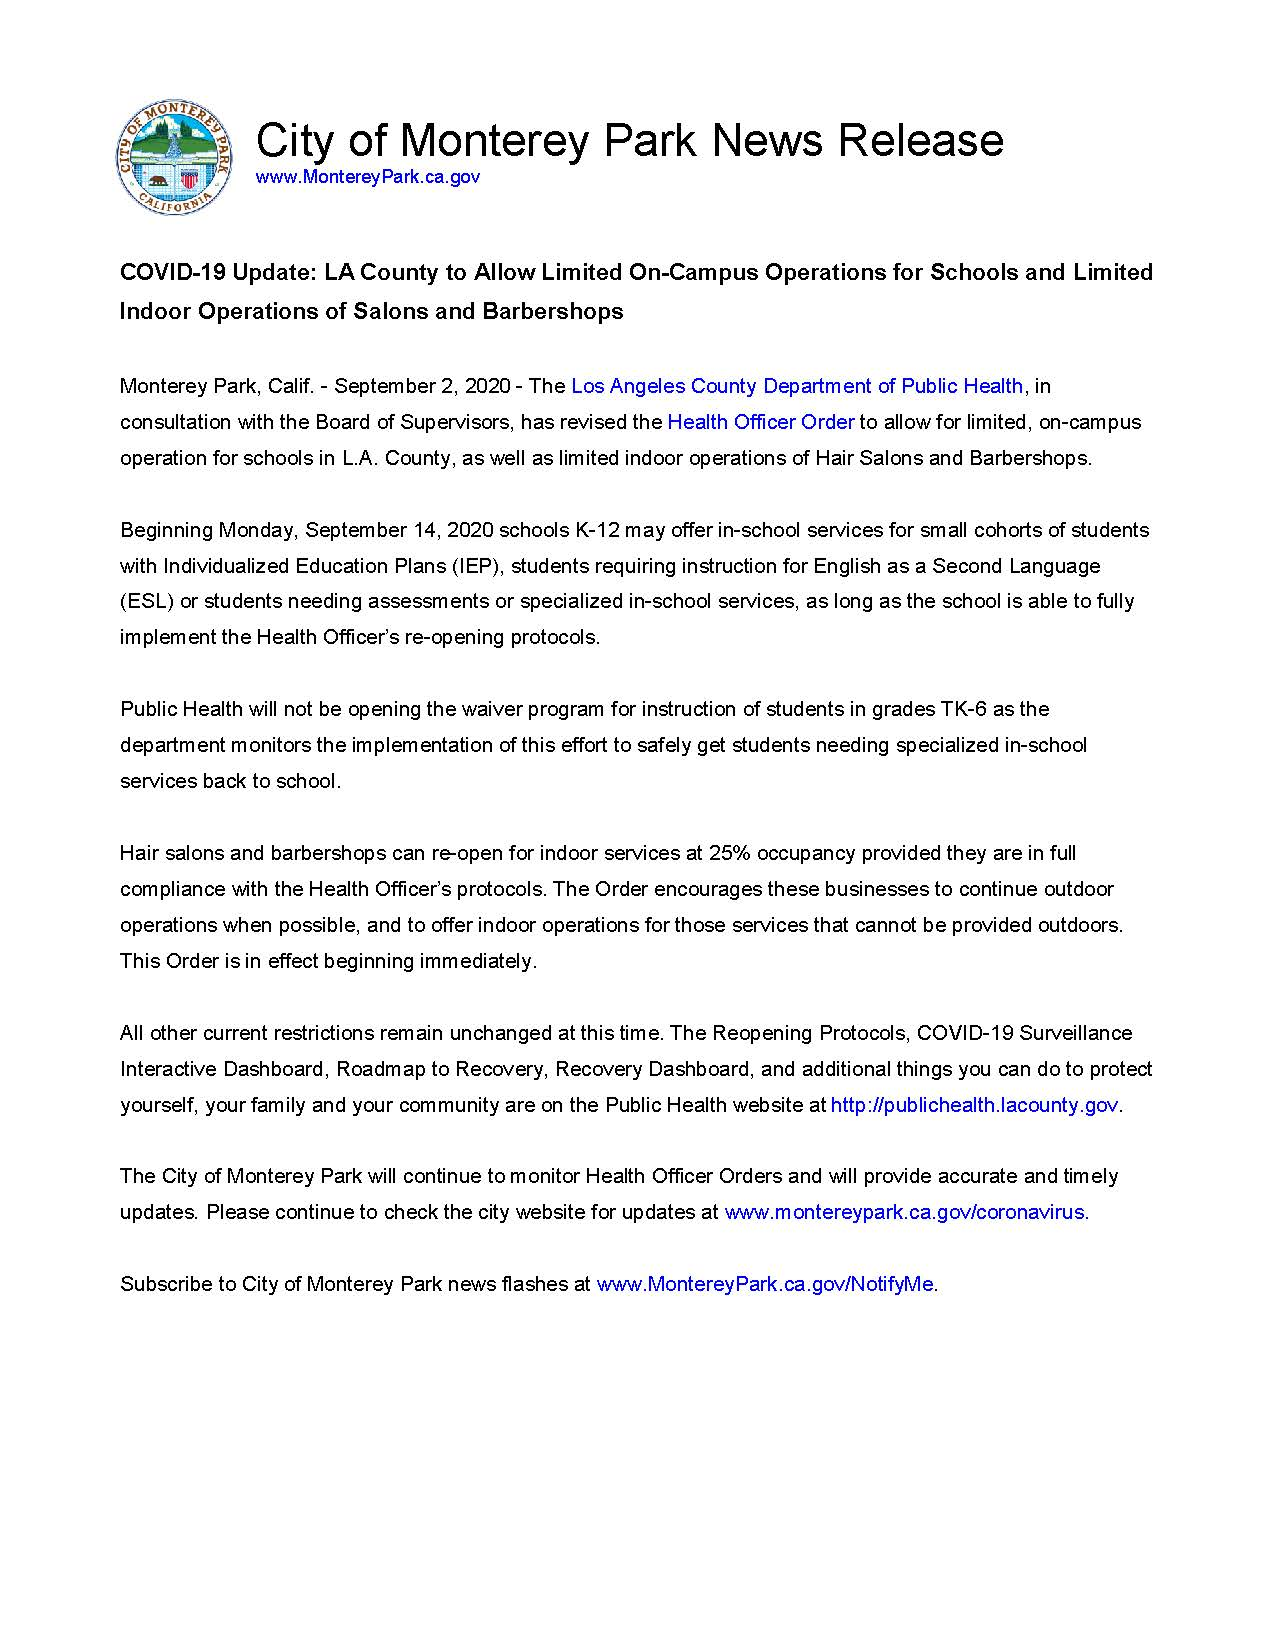 MPK News Release-LA County to Allow Limited On-Campus Operations for Schools and Limited Indoor Oper